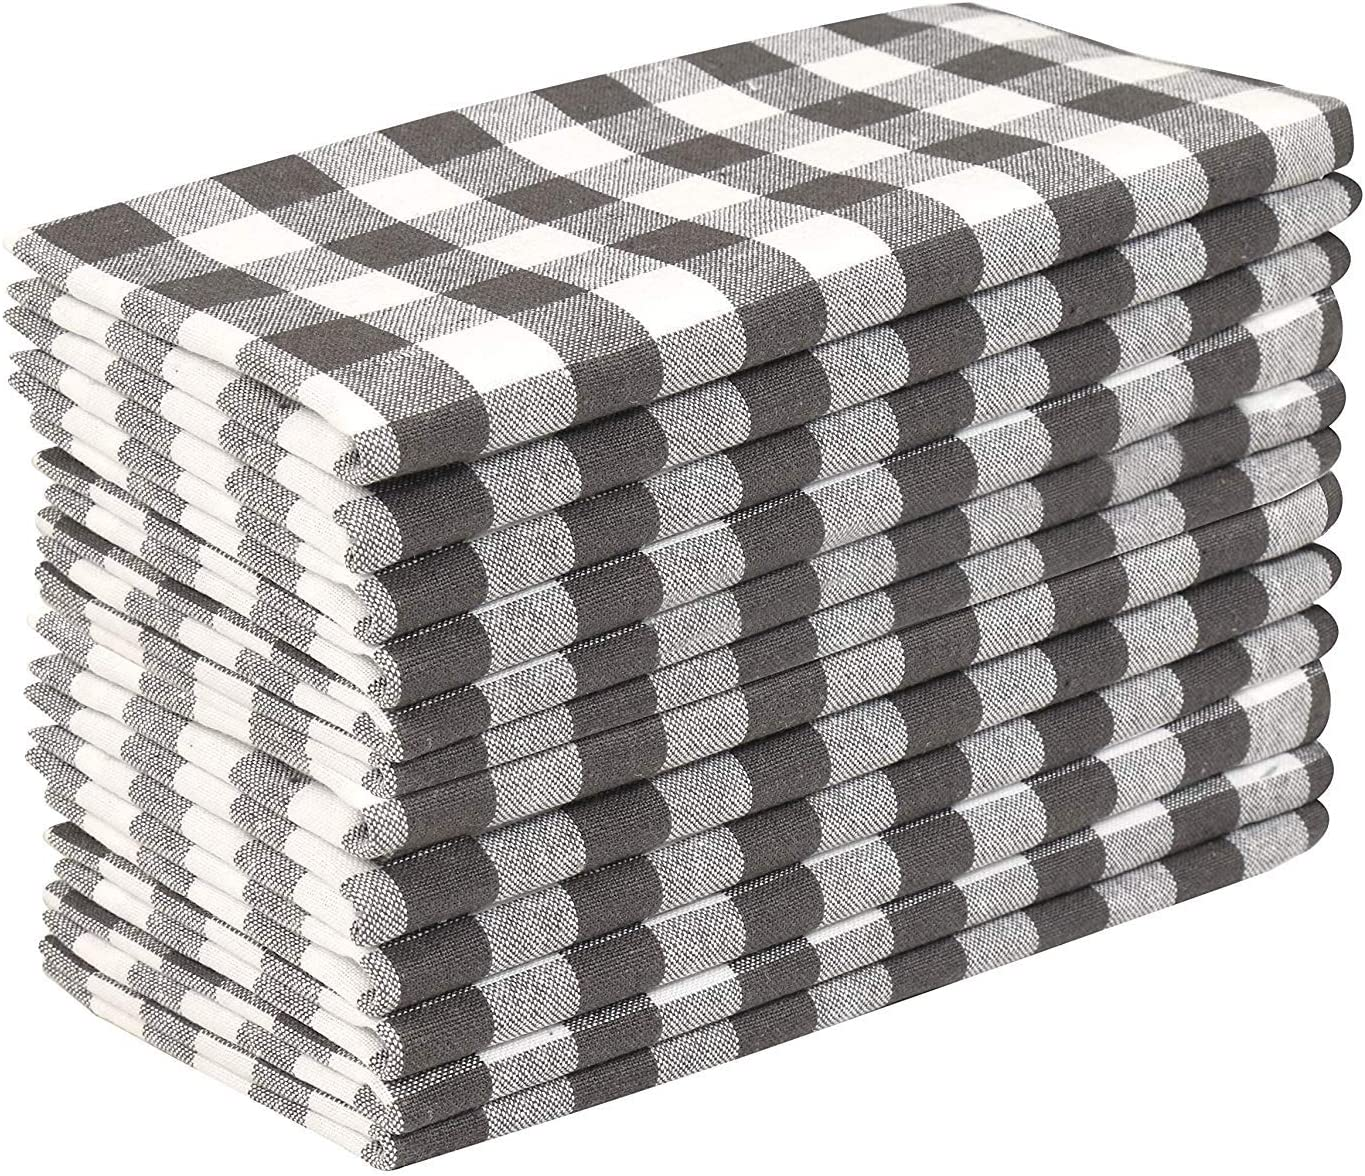 Cloth Dinner Napkin Gingham Plaid Check Fabric-18X18 Charcoal White, Wedding Napkins, Cocktails Napkins, Fabric Napkins, Cotton Napkins, Mitered Corners & Generous Hem, Dinner Napkins Set of 12